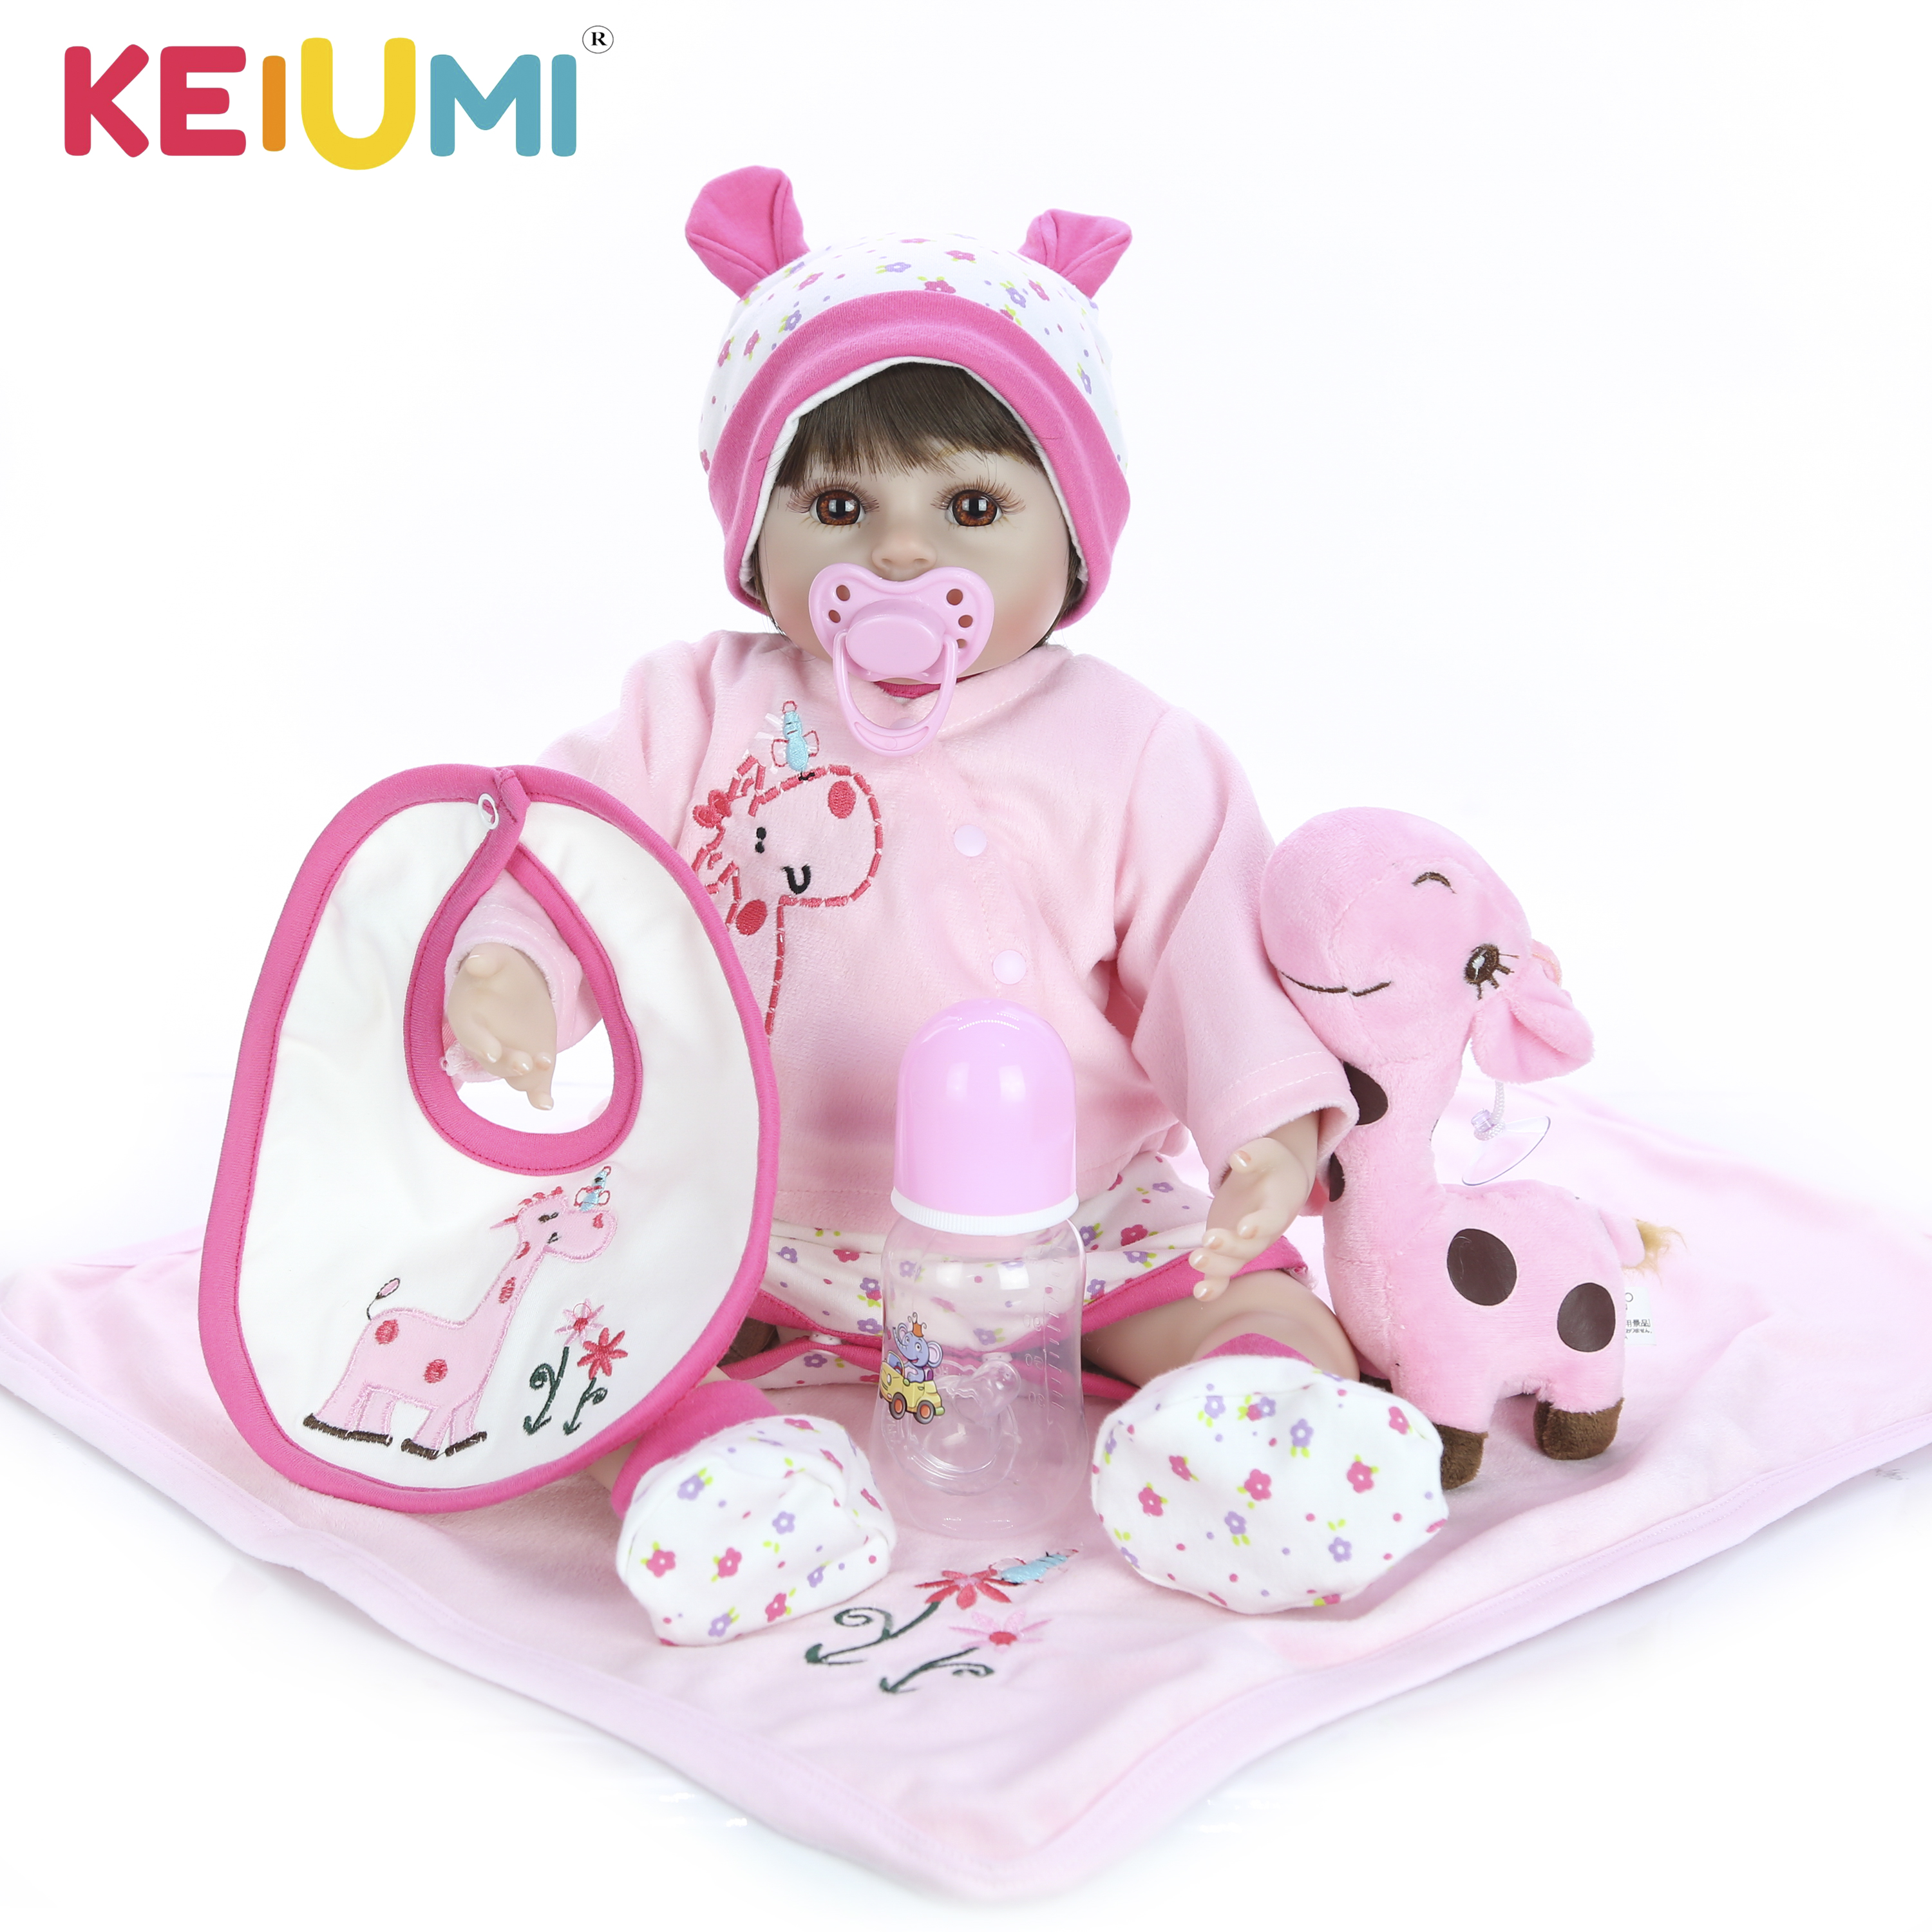 Realistic 18 Reborn Babies Girl Soft Silicone Body KEIUMI Baby Reborn Doll 48cm kids Birthday Gift